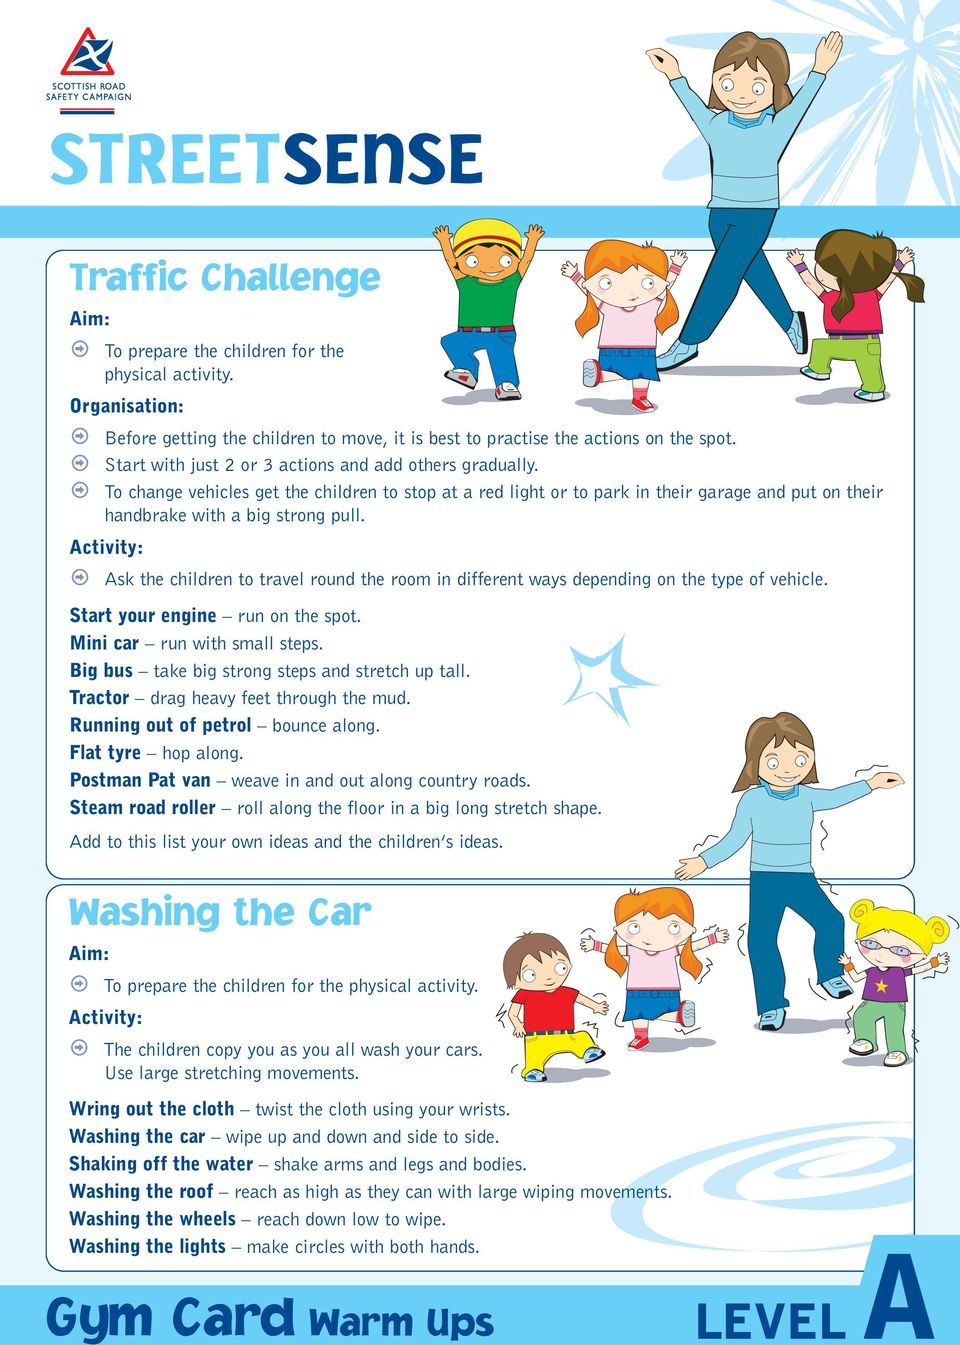 Ask the children to travel round the room in different ways depending on the type of vehicle. Start your engine run on the spot. Mini car run with small steps.